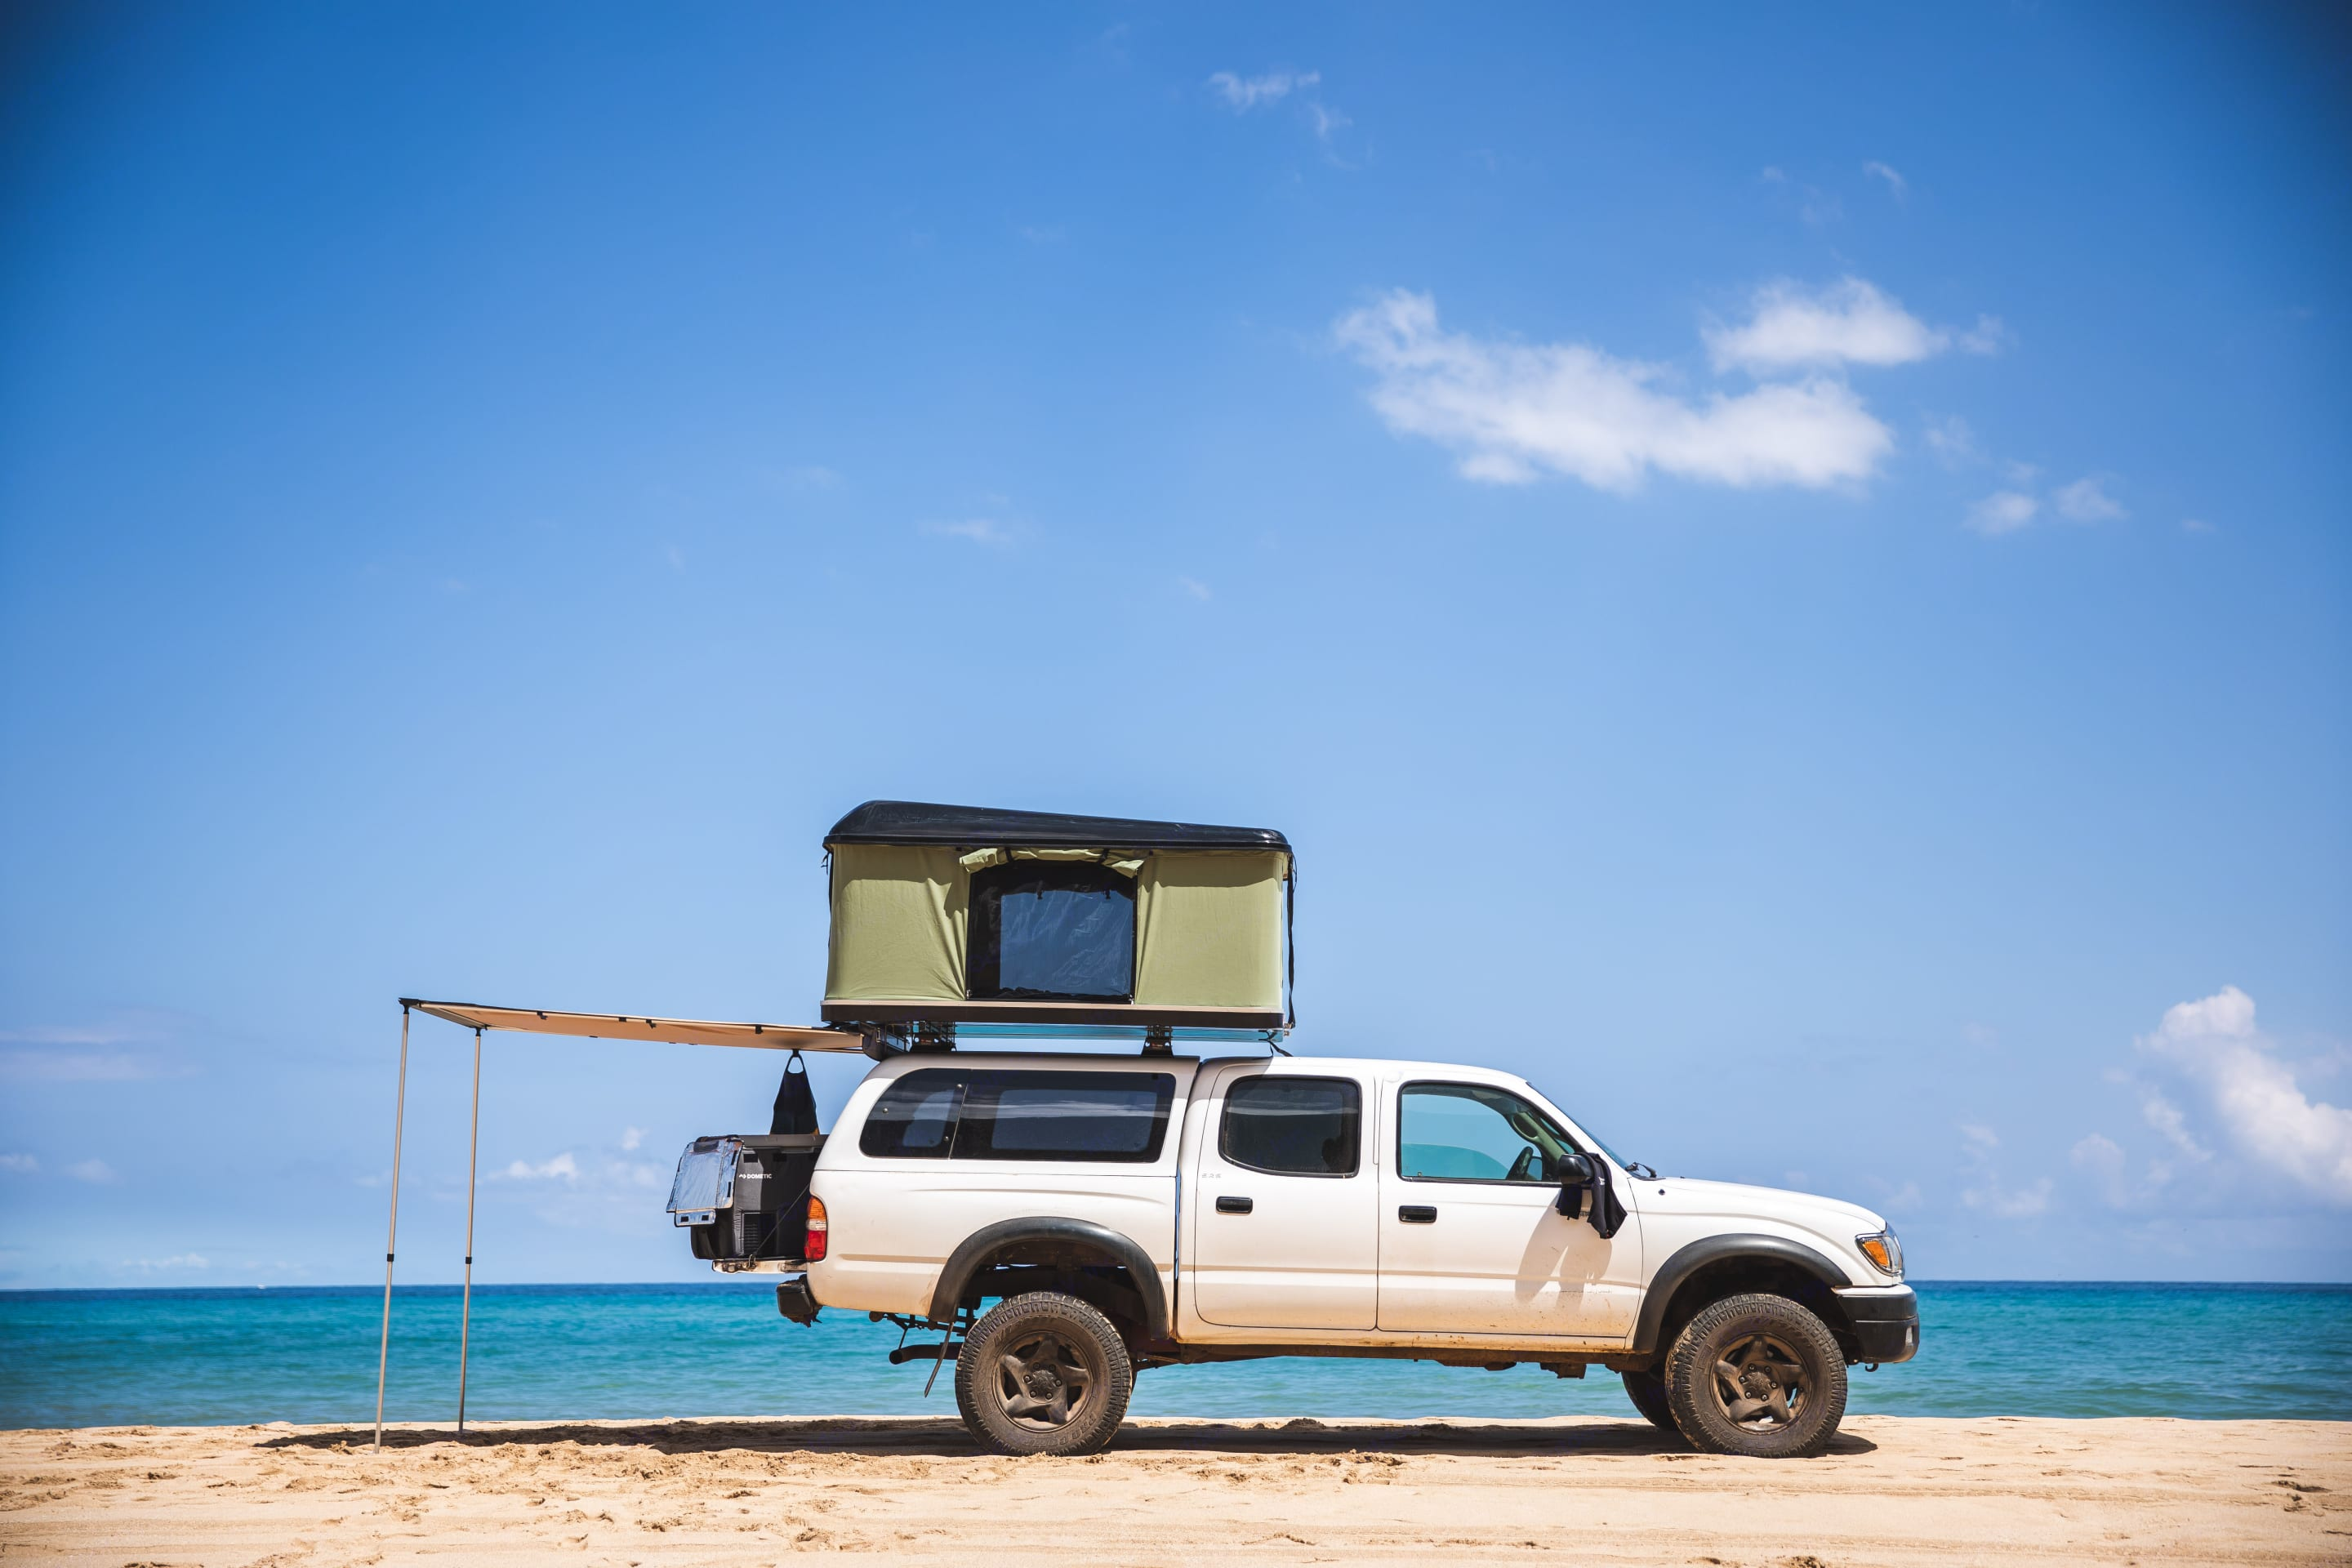 Hardshell Roof Tent & Rear Awning keep you cool on hot summer days at the beach.. Toyota Tacoma 2004